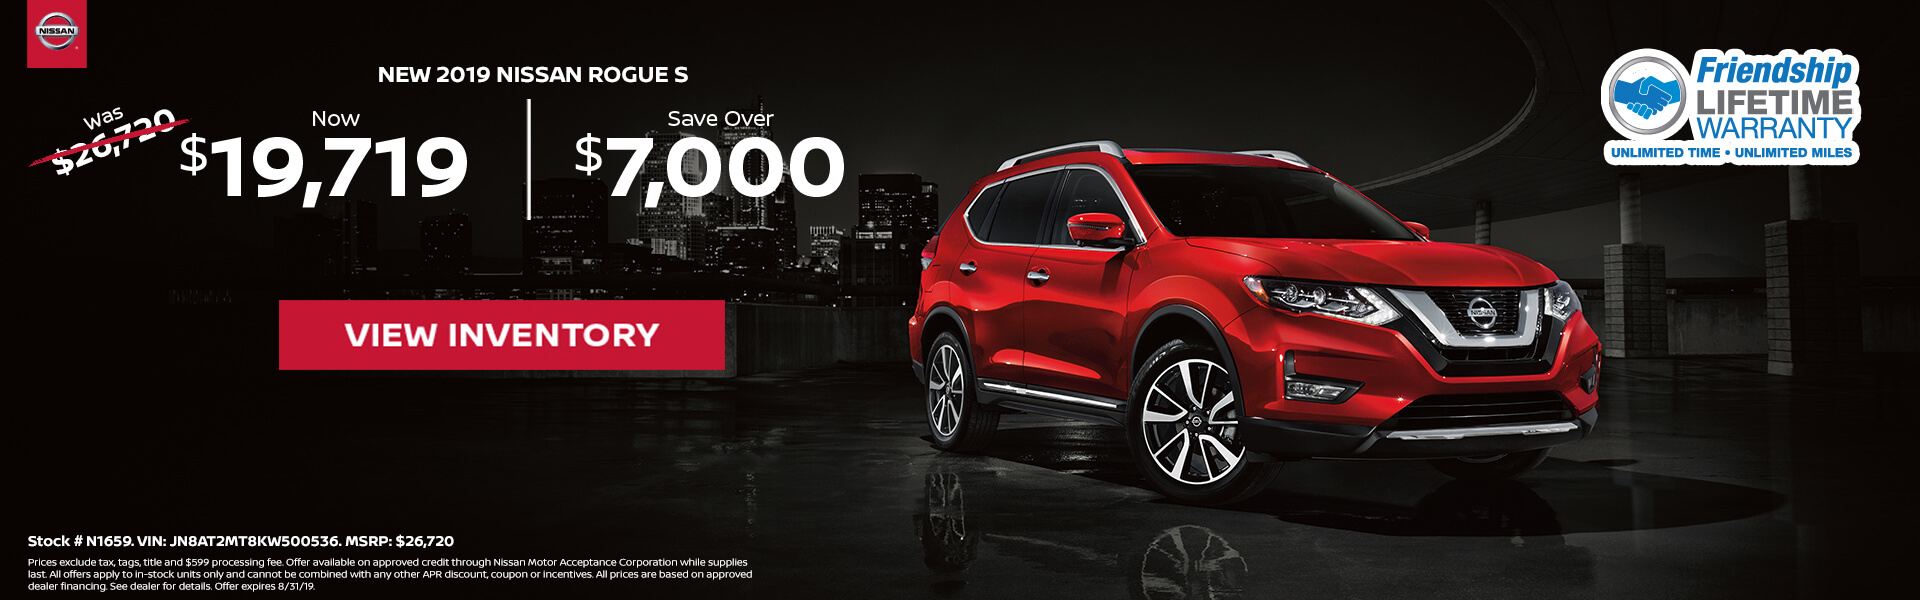 Nissan Rogue $19,719 Purchase